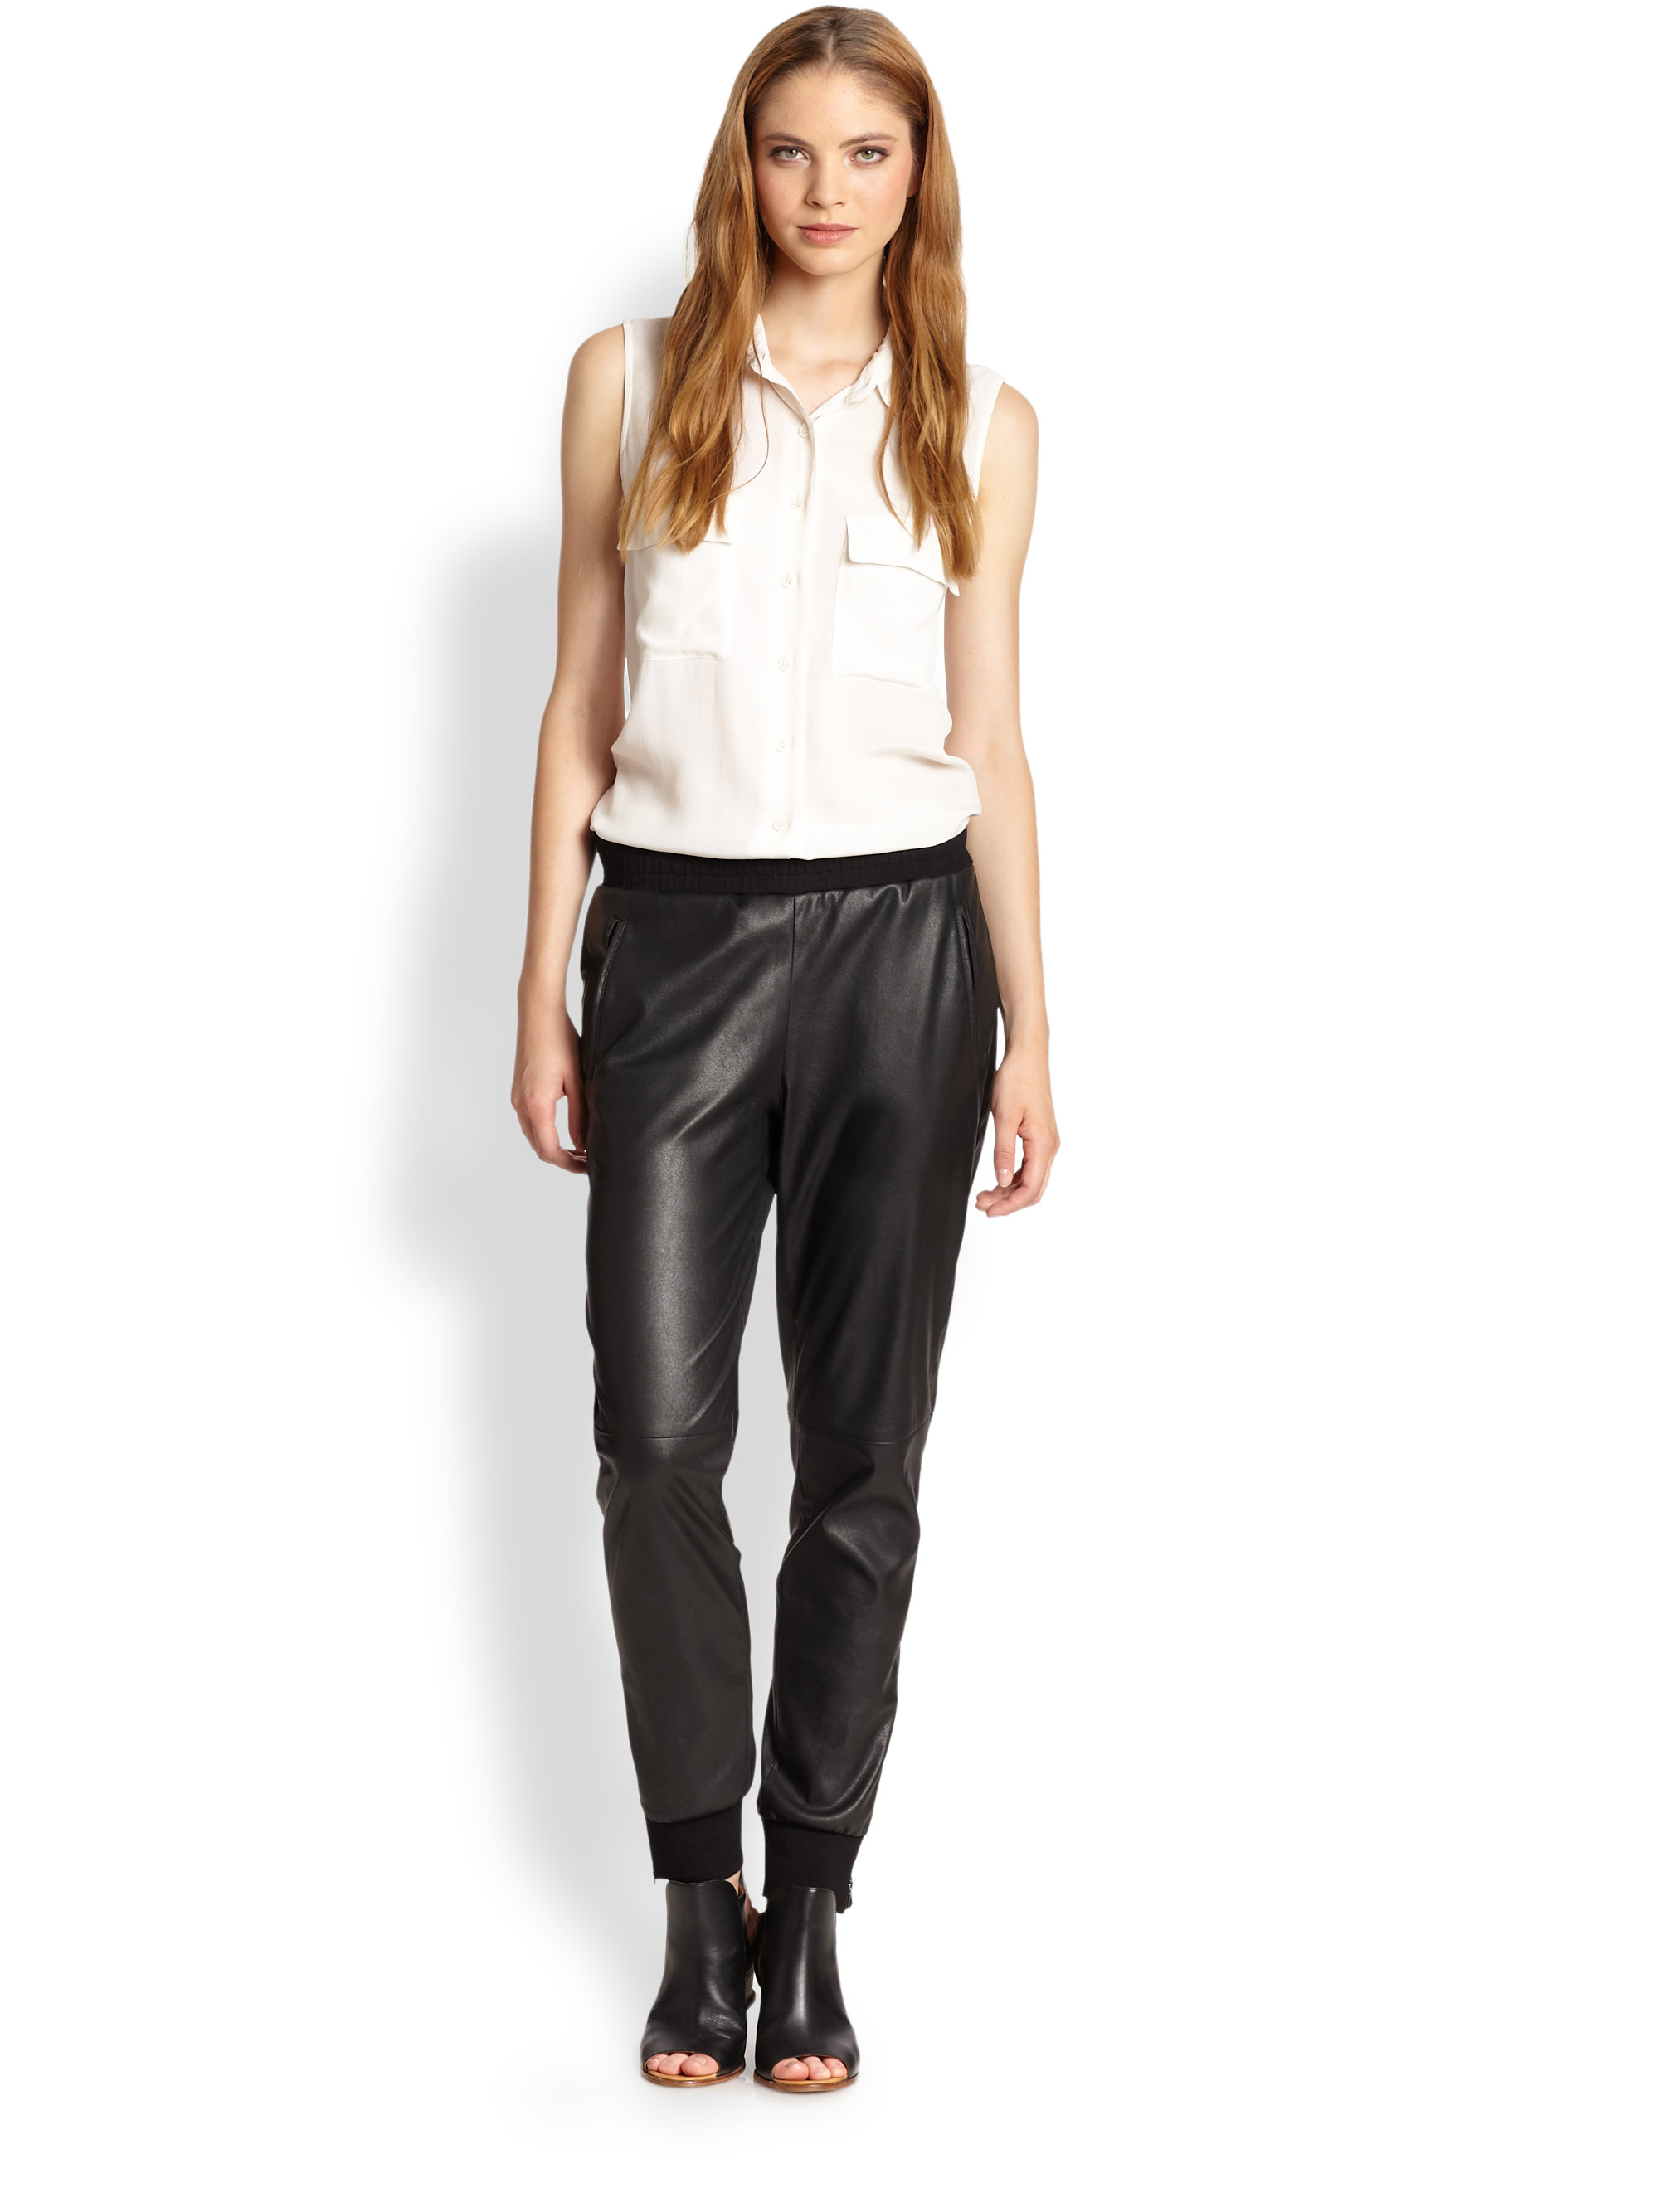 a20ea7daf53384 Gallery. Previously sold at: Saks Fifth Avenue · Women's Black Leather Pants  Women's Faux ...